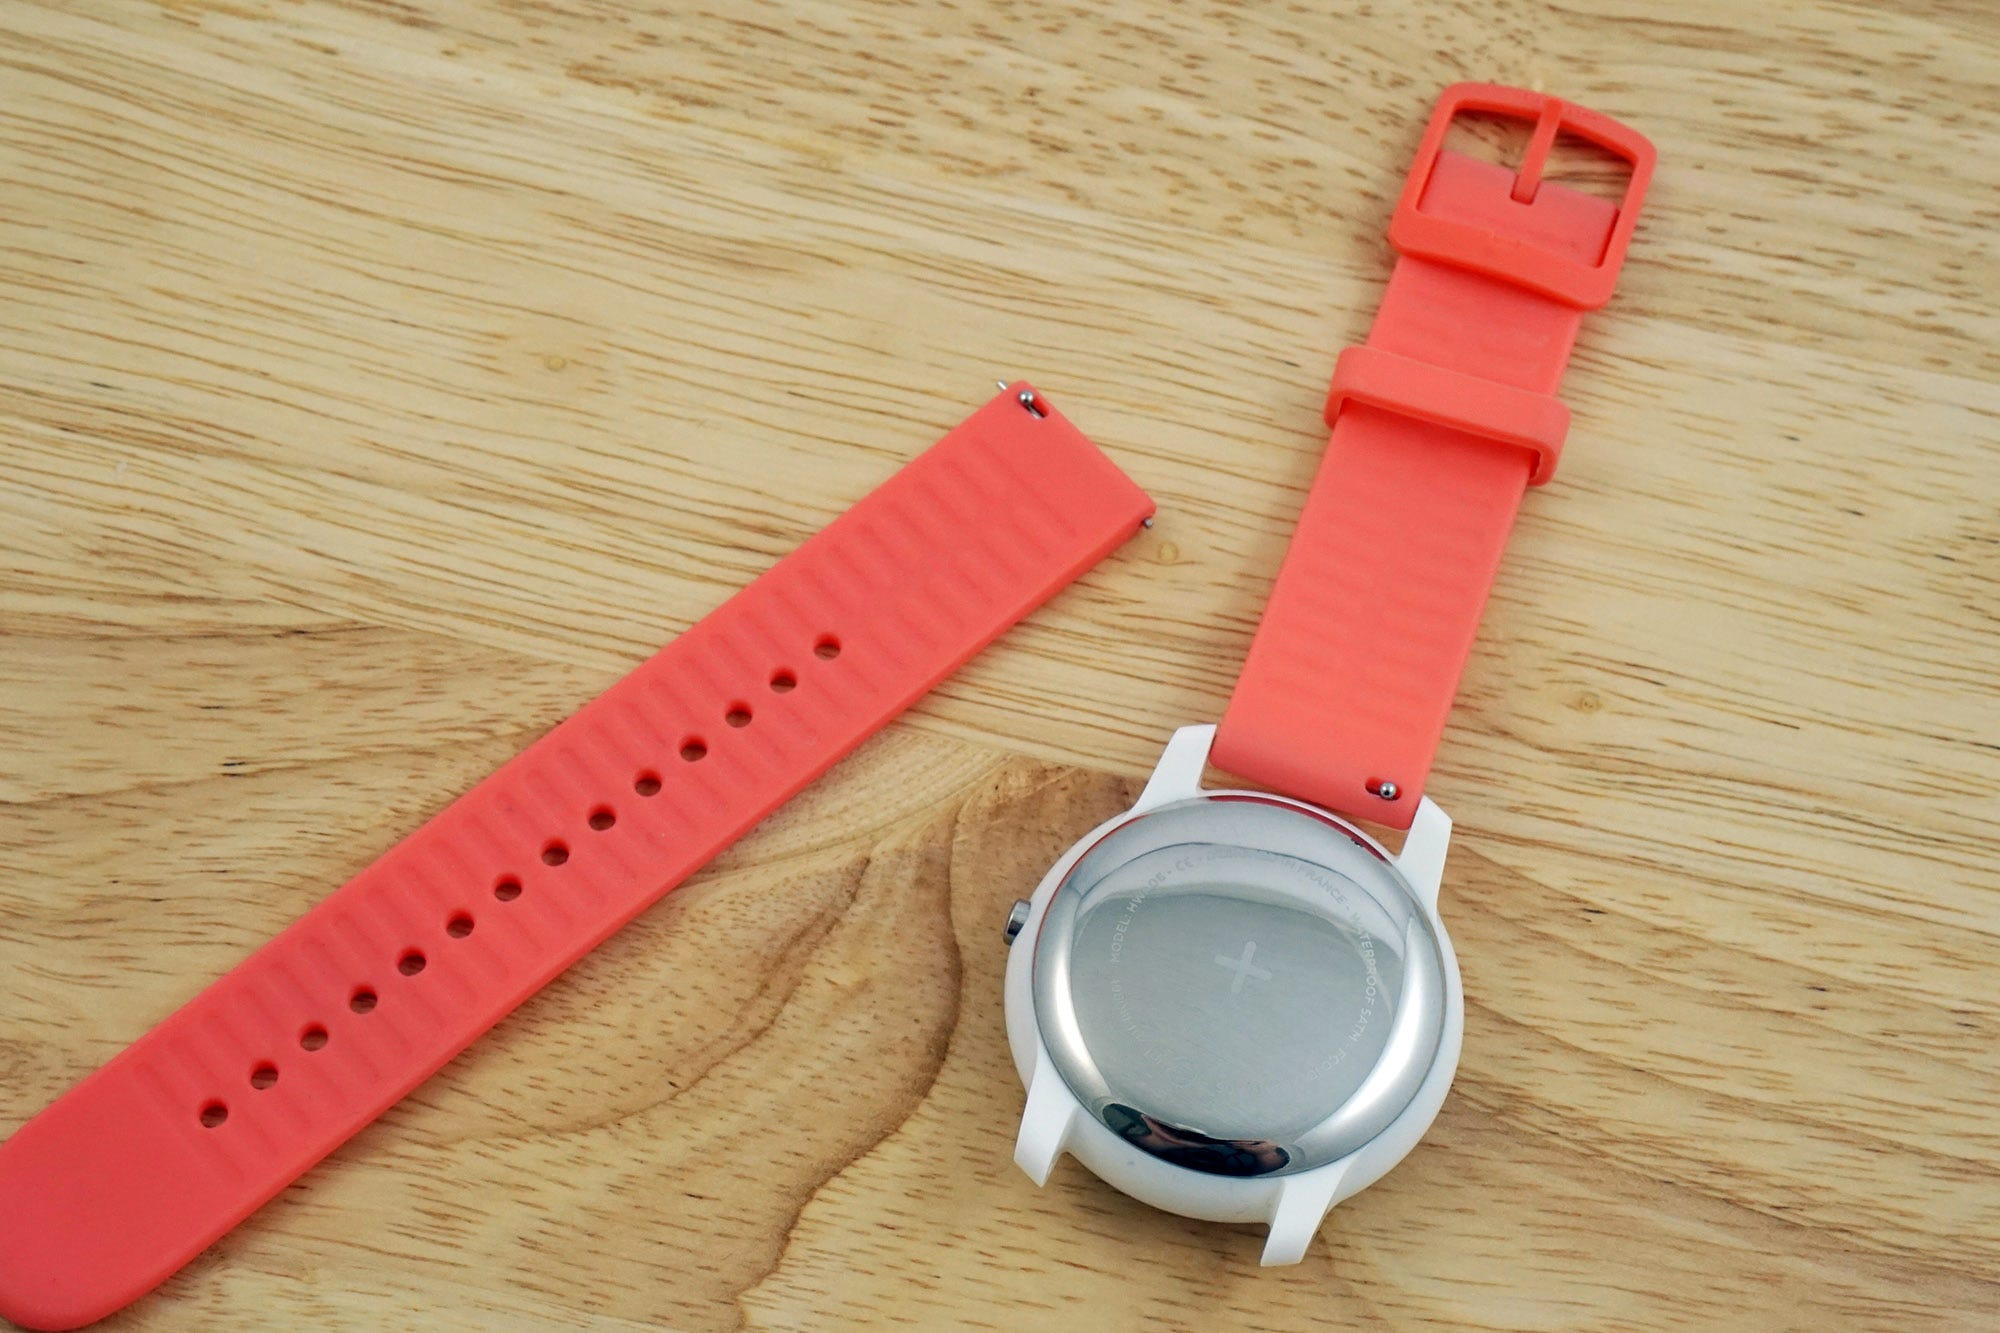 The Move is compatible with standard watch bands, and the included band has quick-release pins.